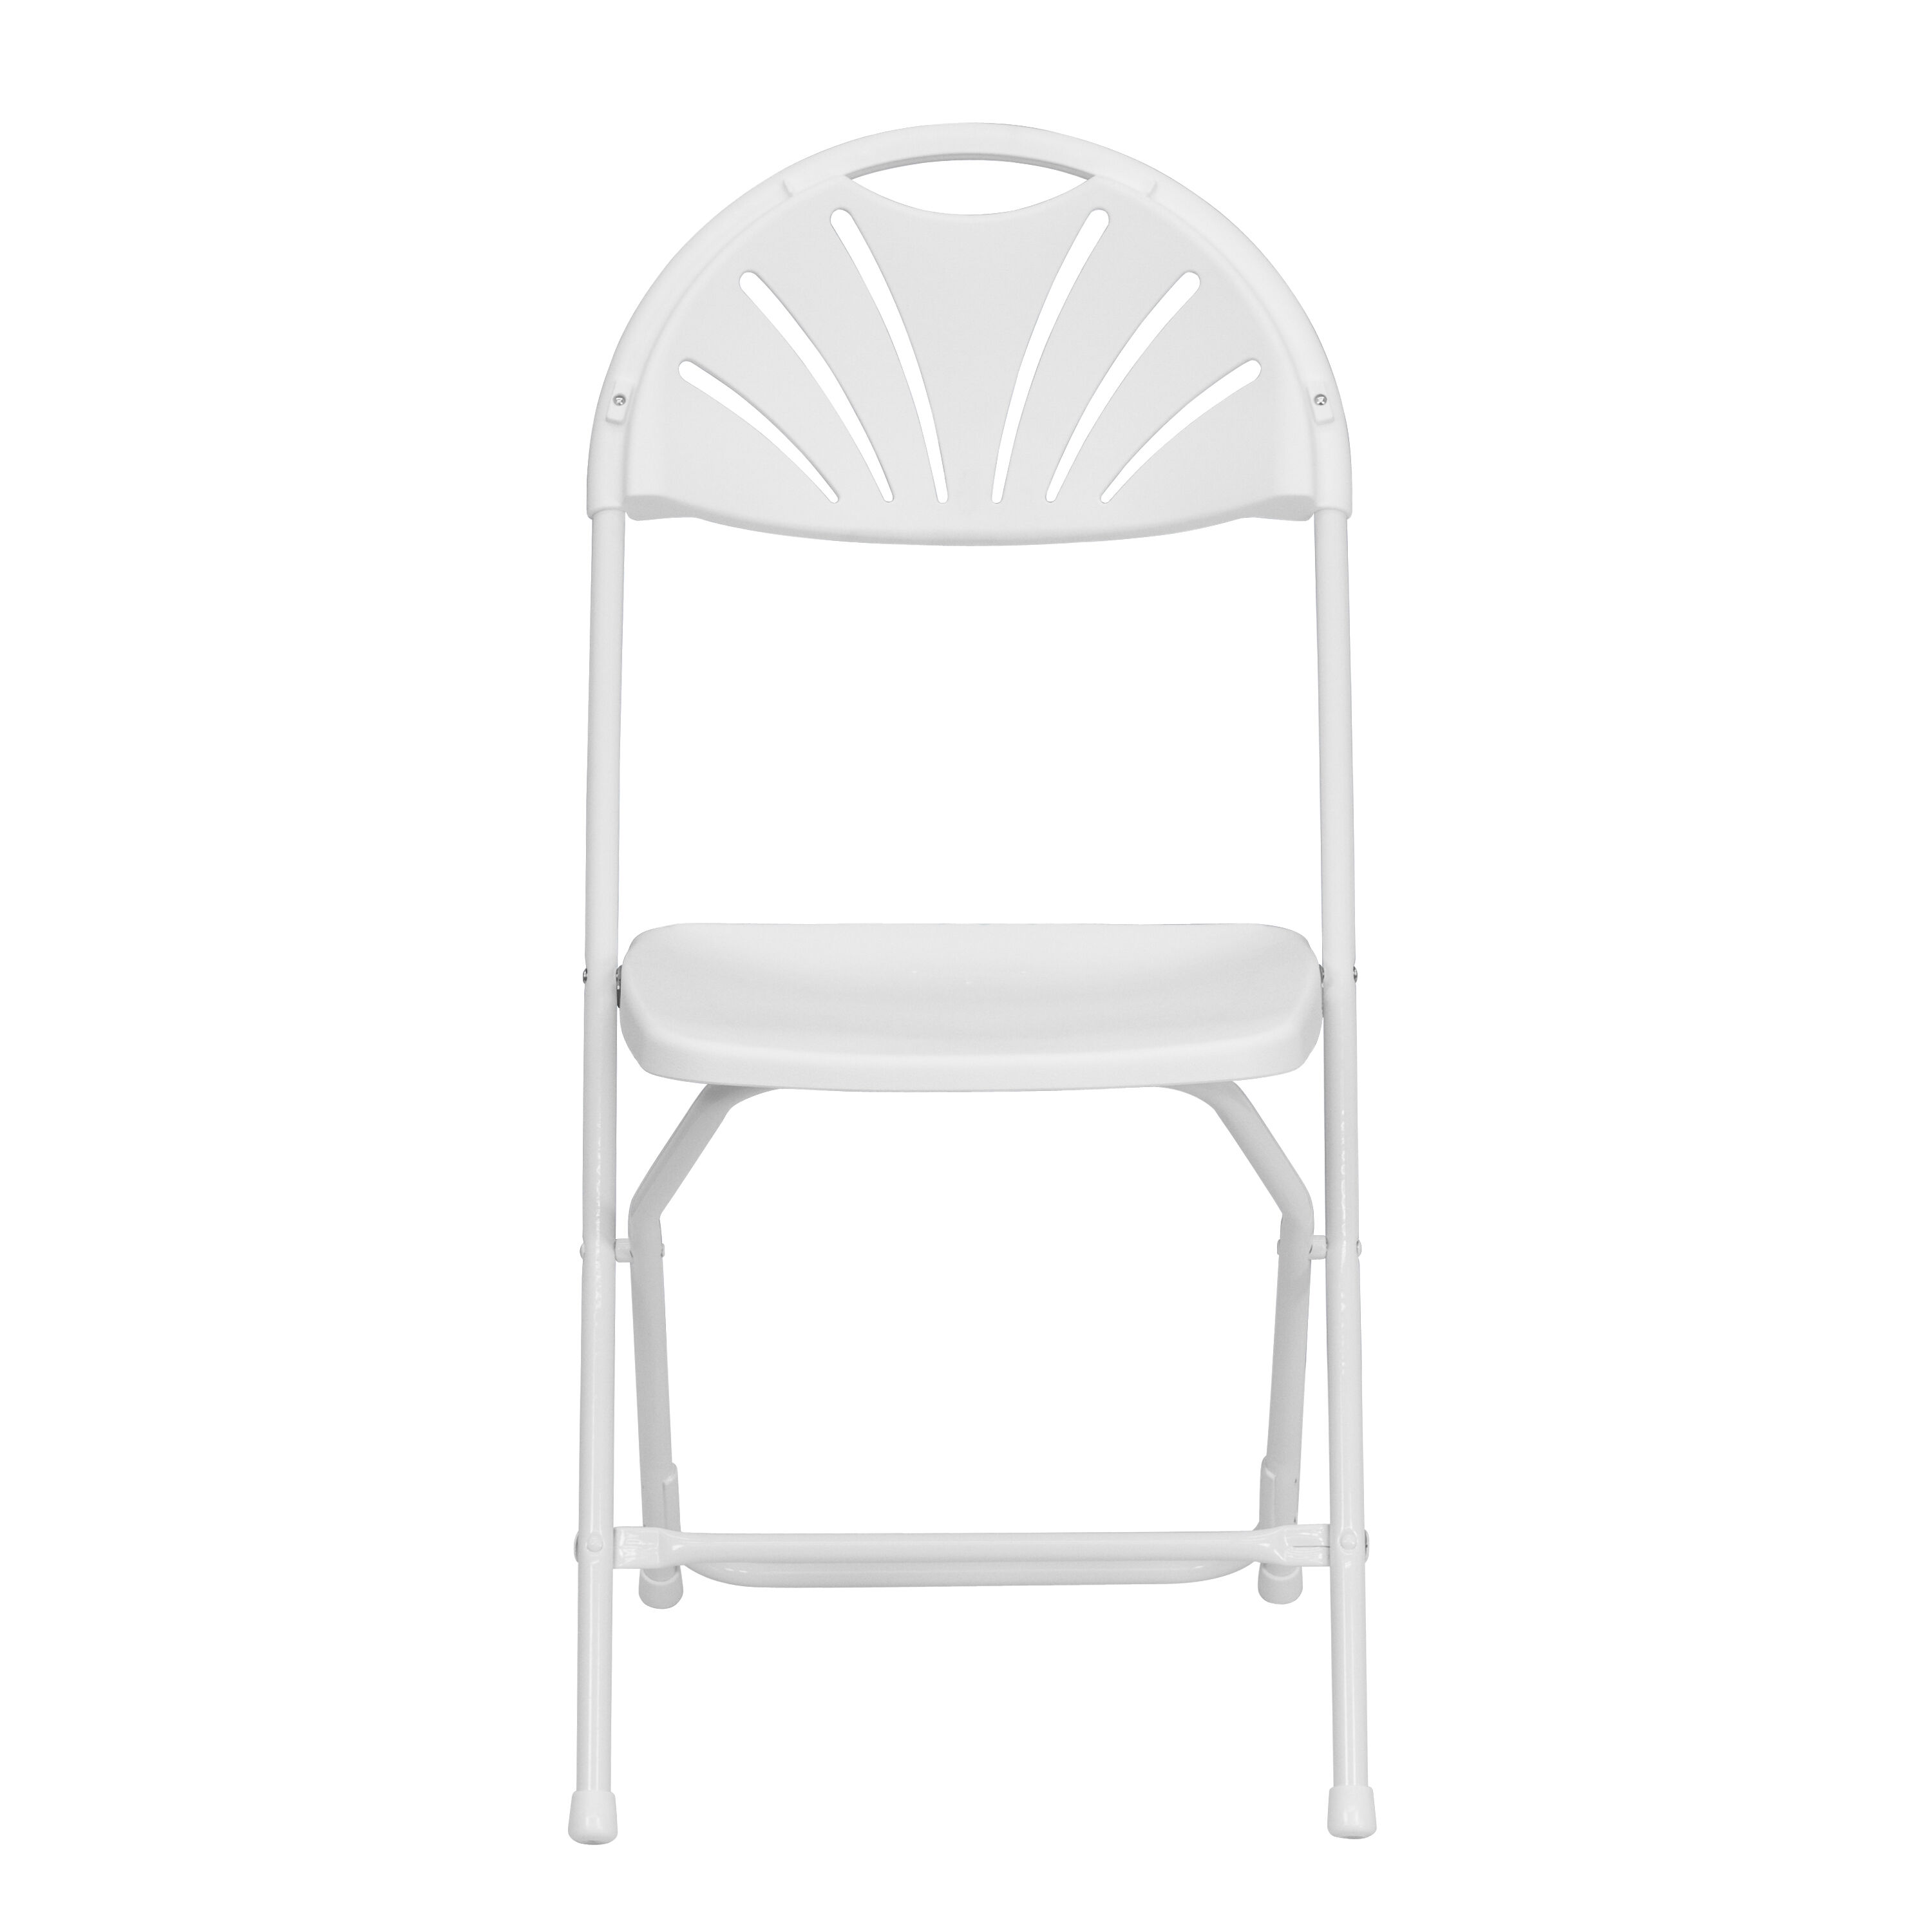 folding chairs for less wicker fan back chair white plastic le l 4 gg